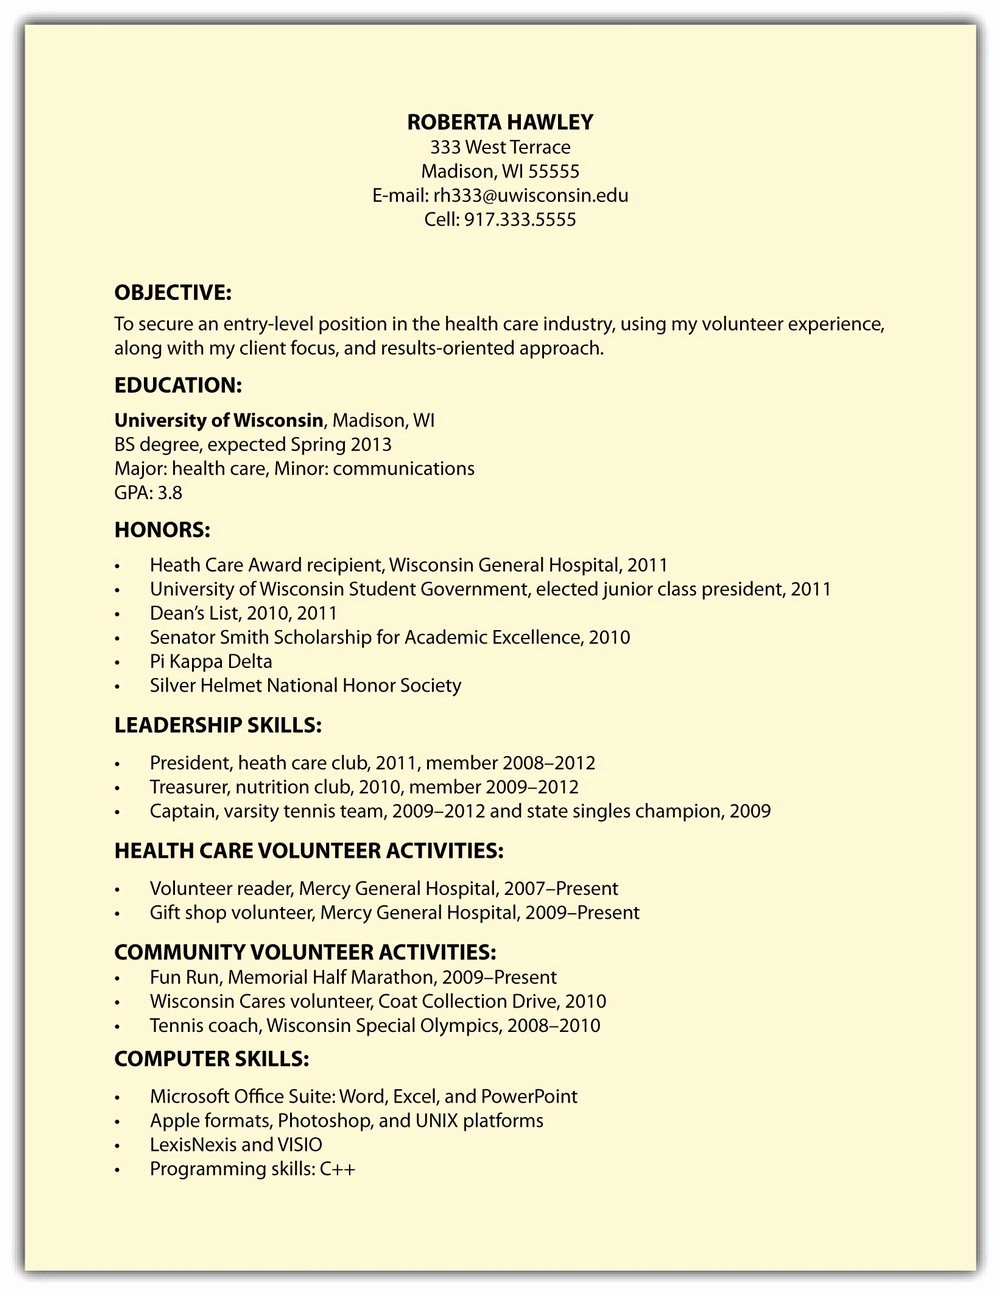 Sample Of A Simple Resume Fresh Simple Resume format Sample for Job Resumes 2426